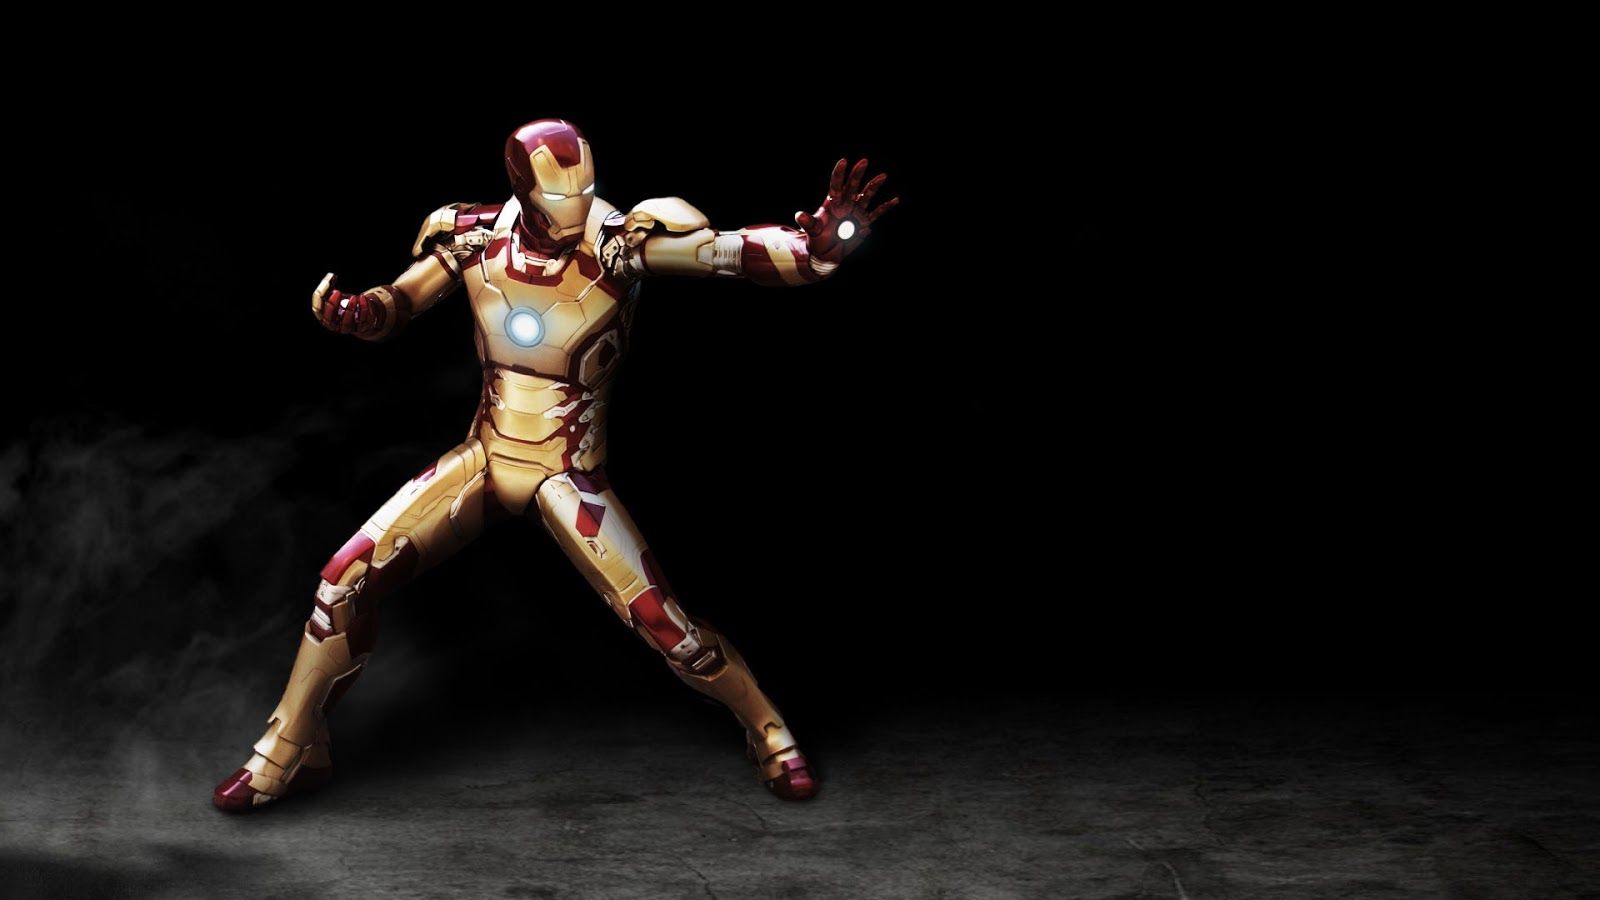 Iron Man Wallpapers HD for Desktop